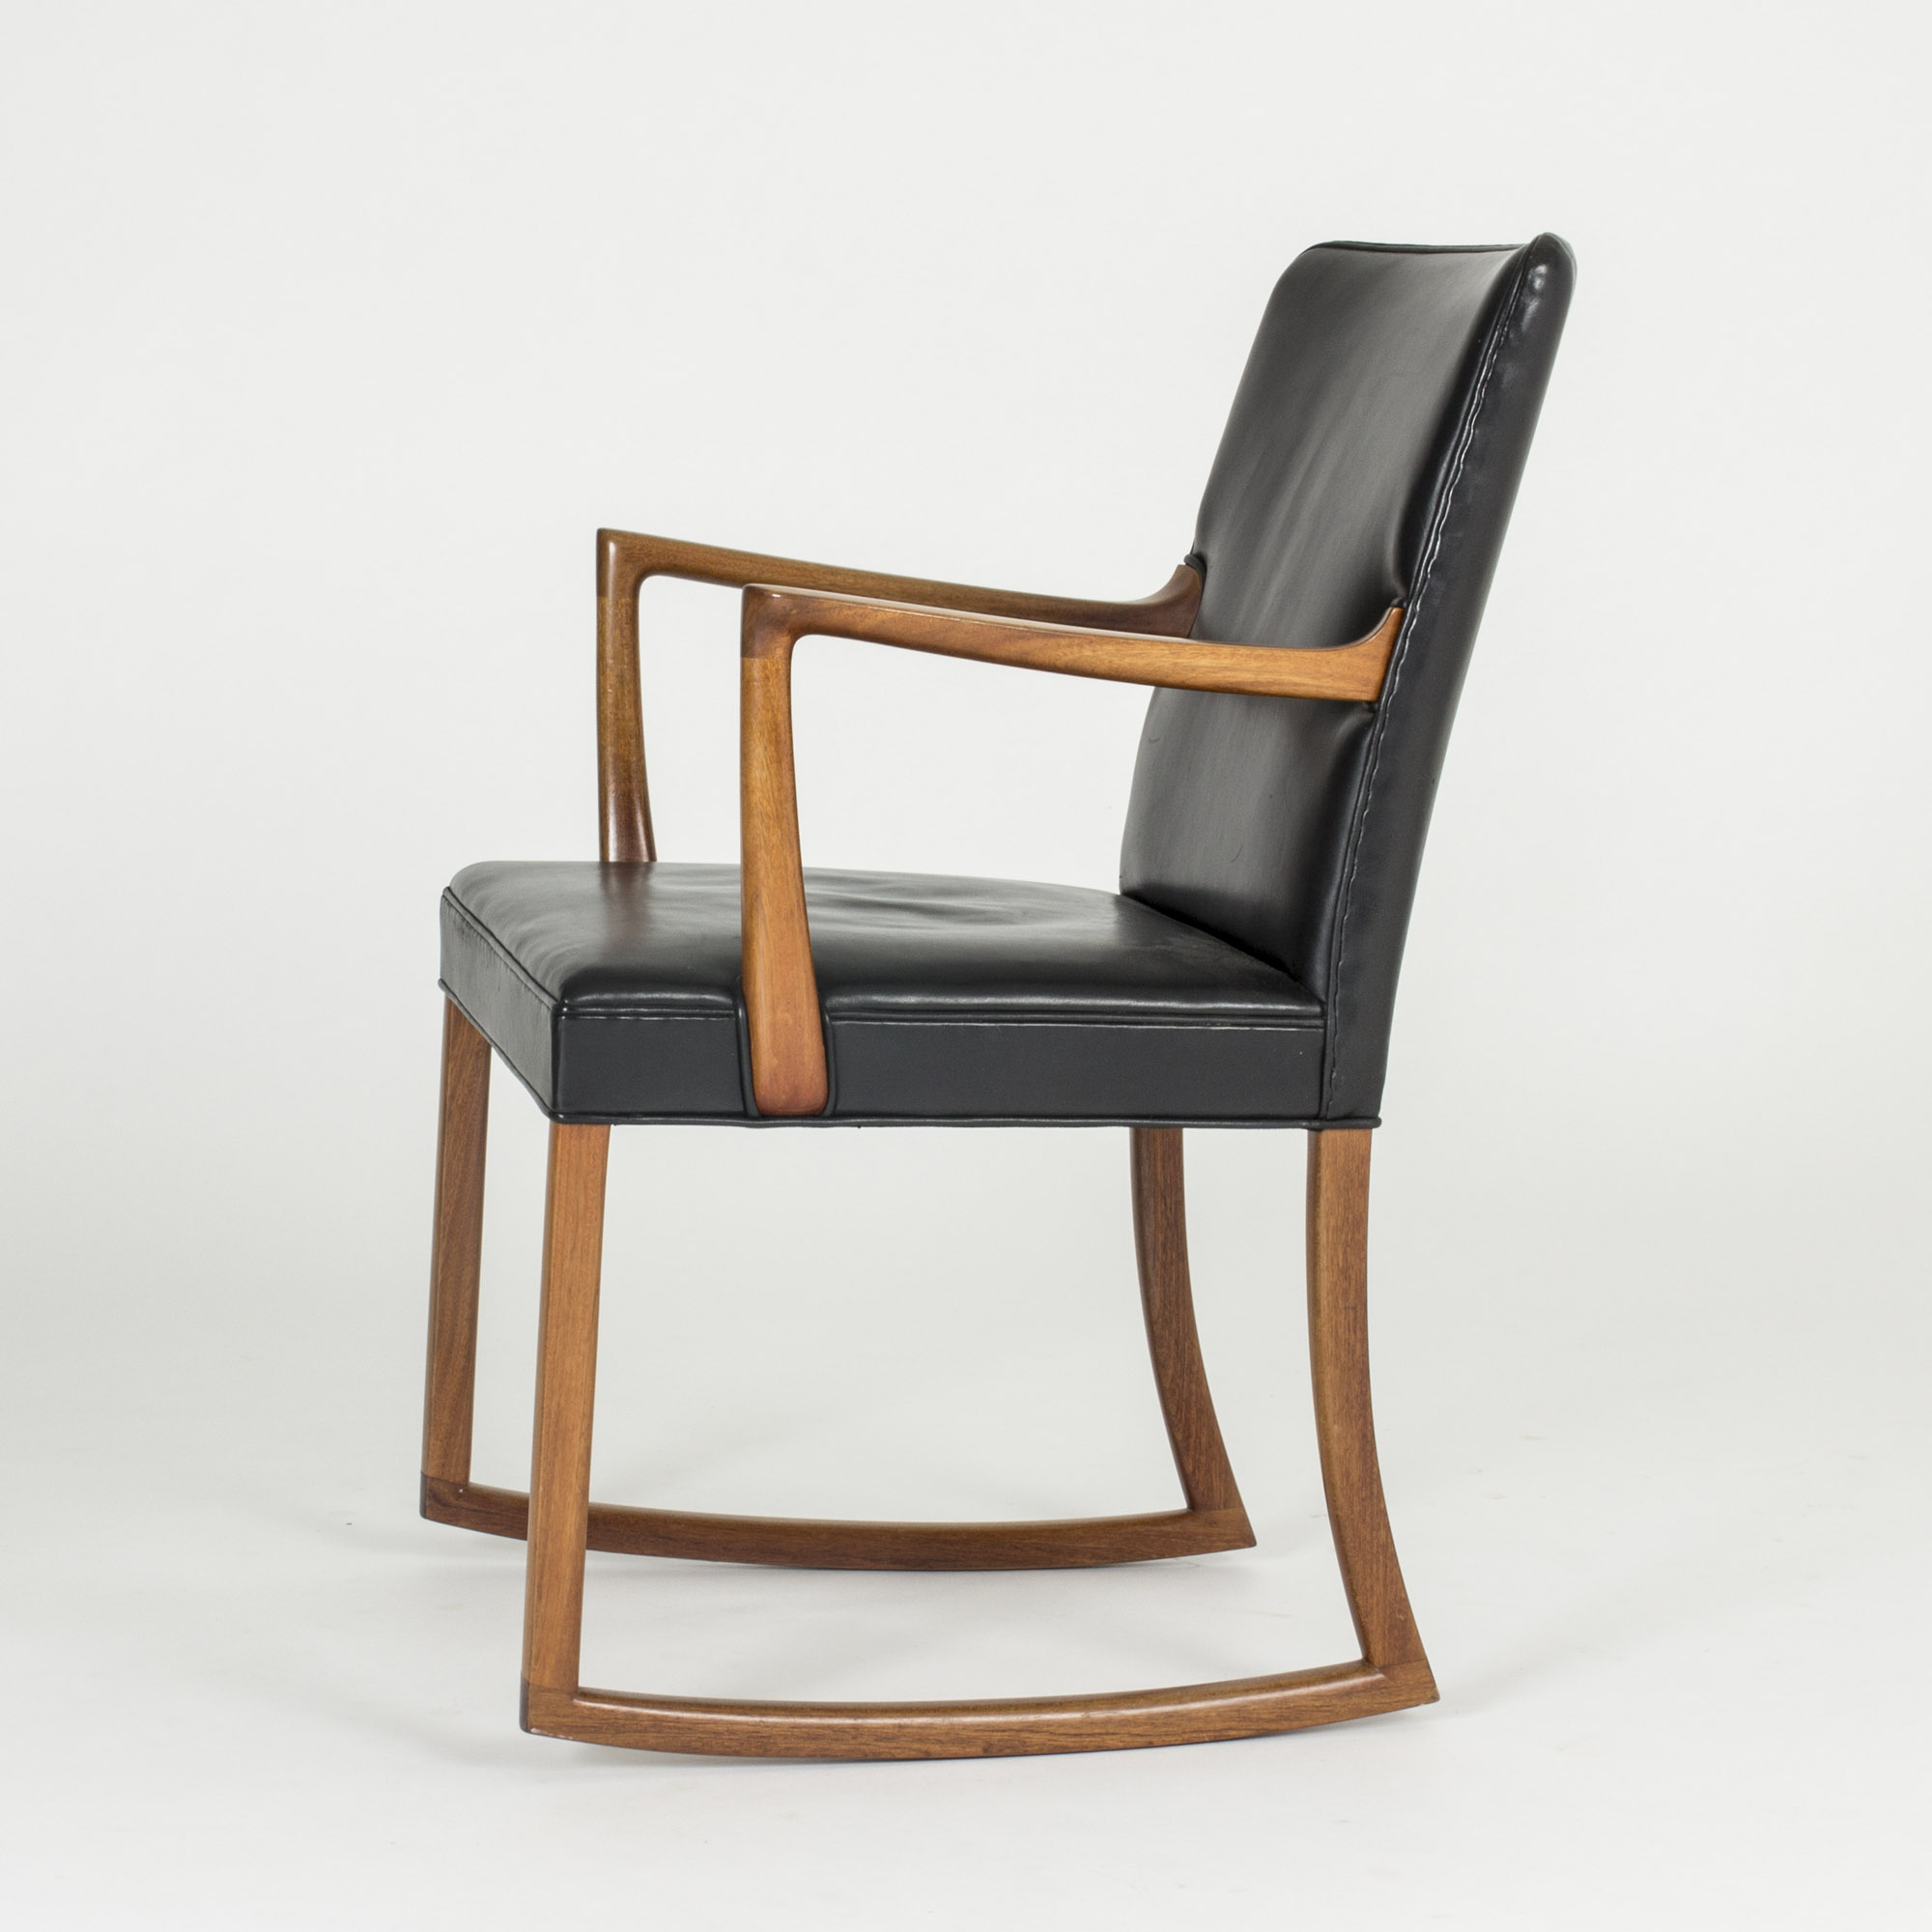 Leather Rocking Chair Rosewood And Leather Rocking Chair By Ole Wanscher